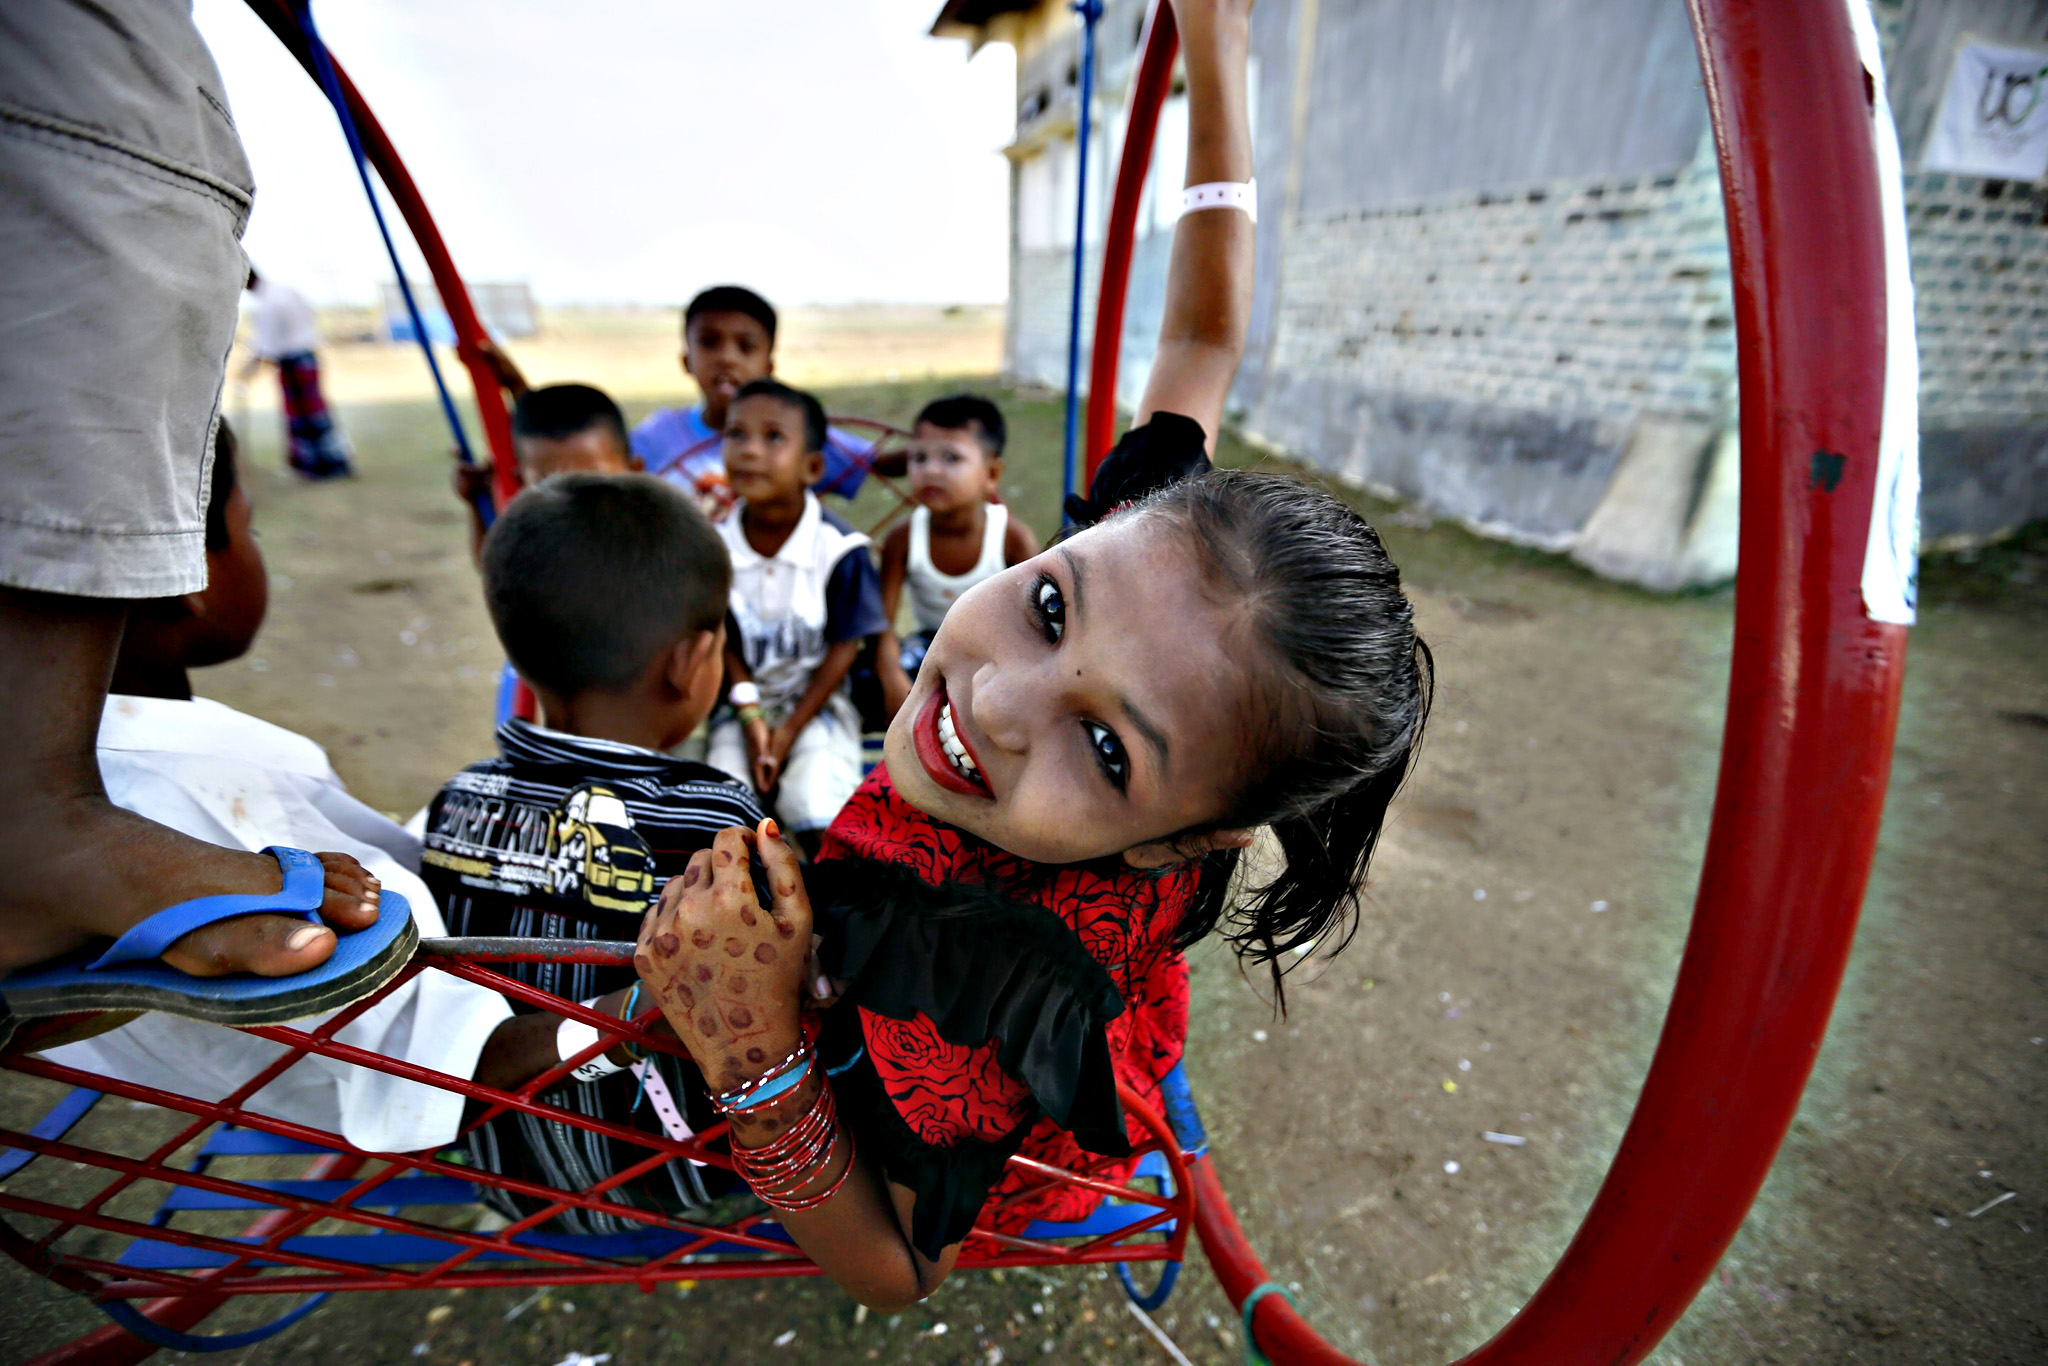 Rohingya refugee children play at their temporary camp in Kuala Cangkoi, North Aceh, Indonesia on Tuesday. The mostly Muslim Rohingya say they suffer discrimination in Myanmar, which does not recognize them as one of the official ethnic groups, and considers them to be illegal Bengali immigrants